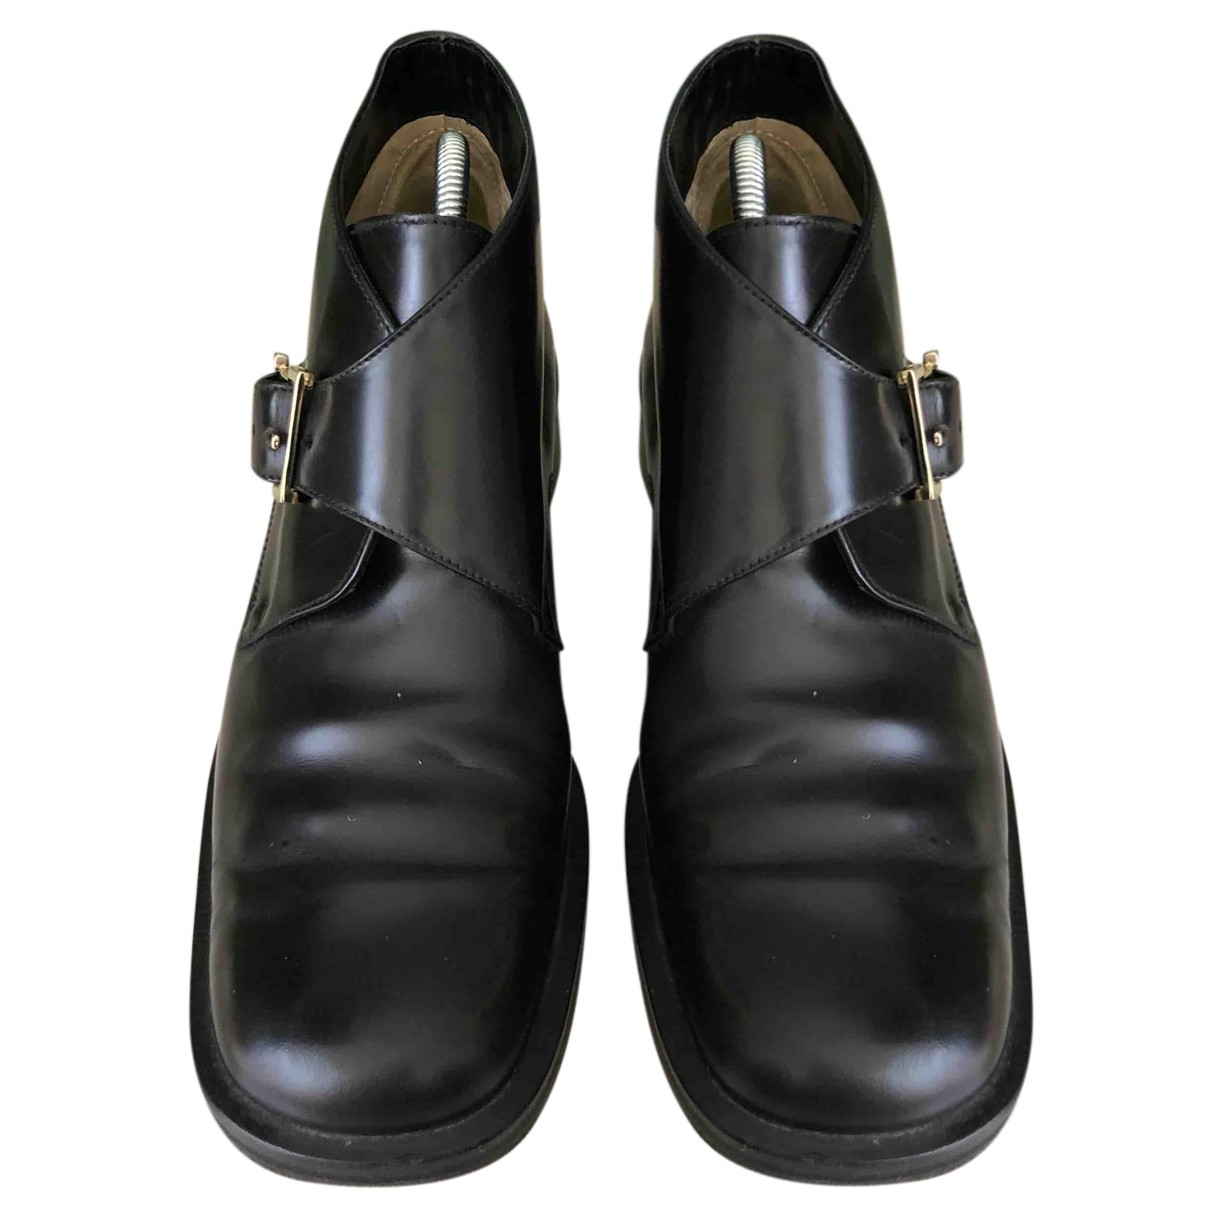 Gucci N Black Leather Ankle boots for Women 35.5 EU